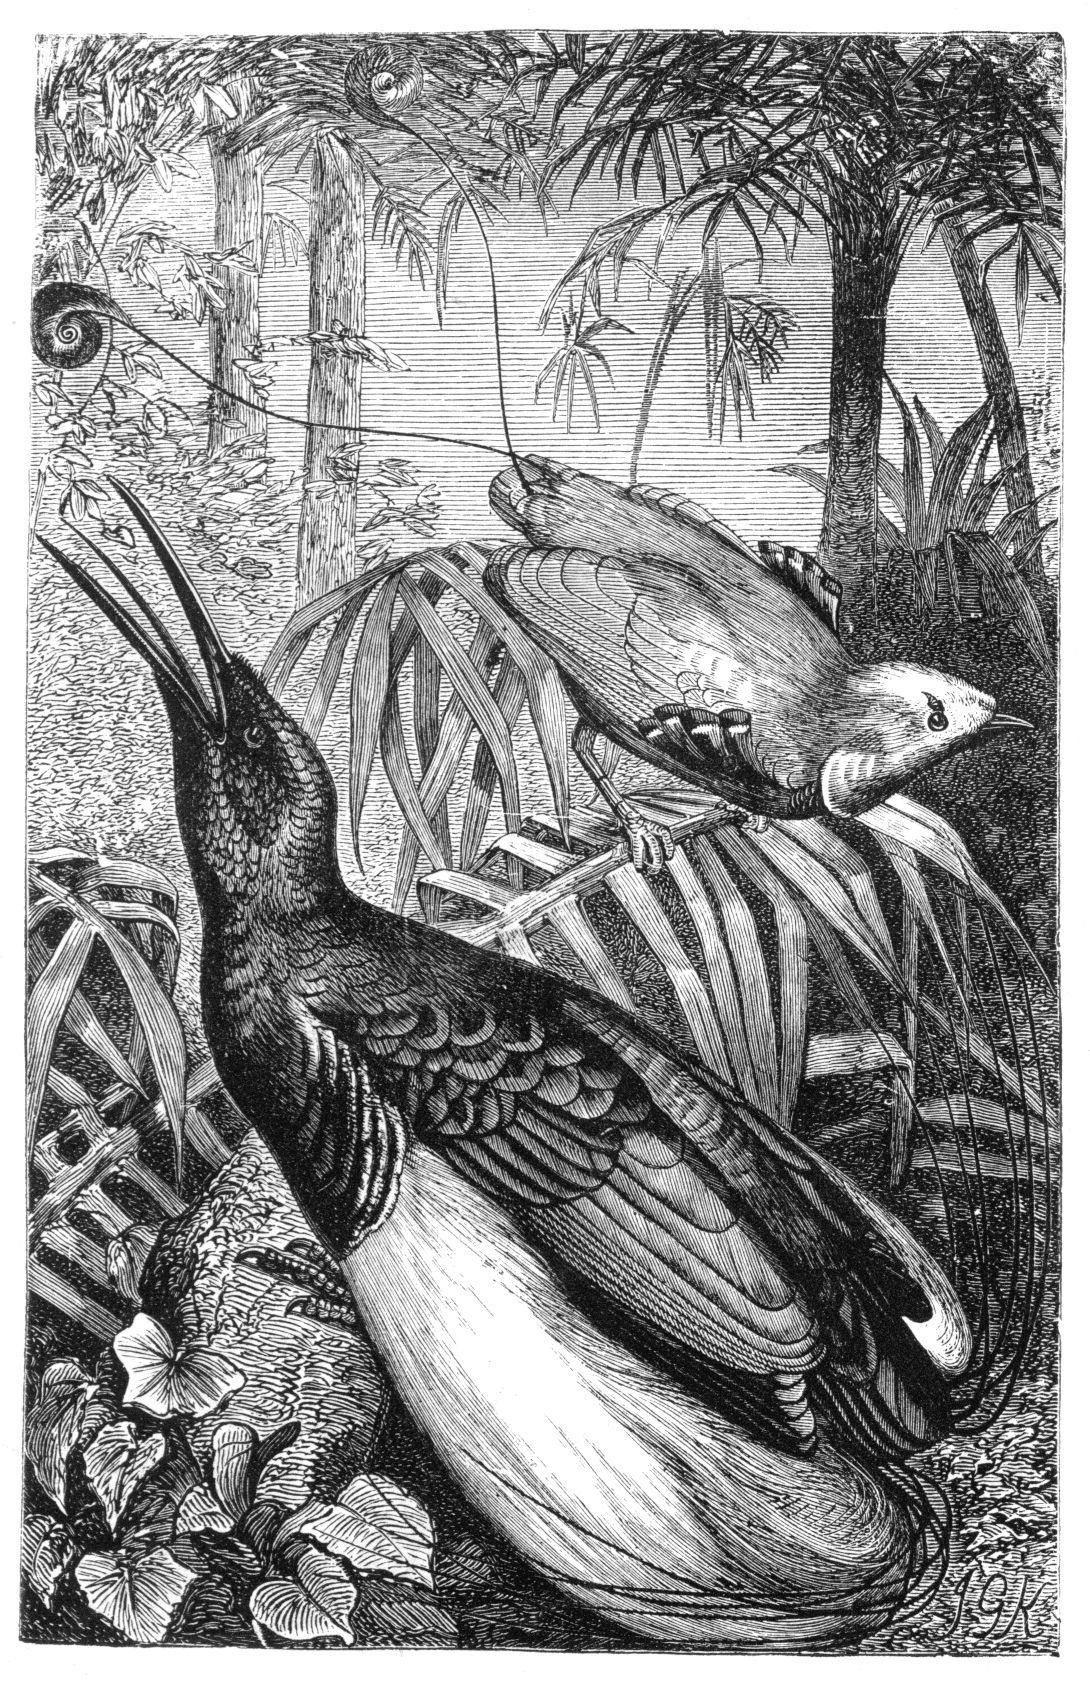 Malay_Archipelago_King_and_Twelve-wired_Birds_of_Paradise.jpg 1,090×1,696 pixels